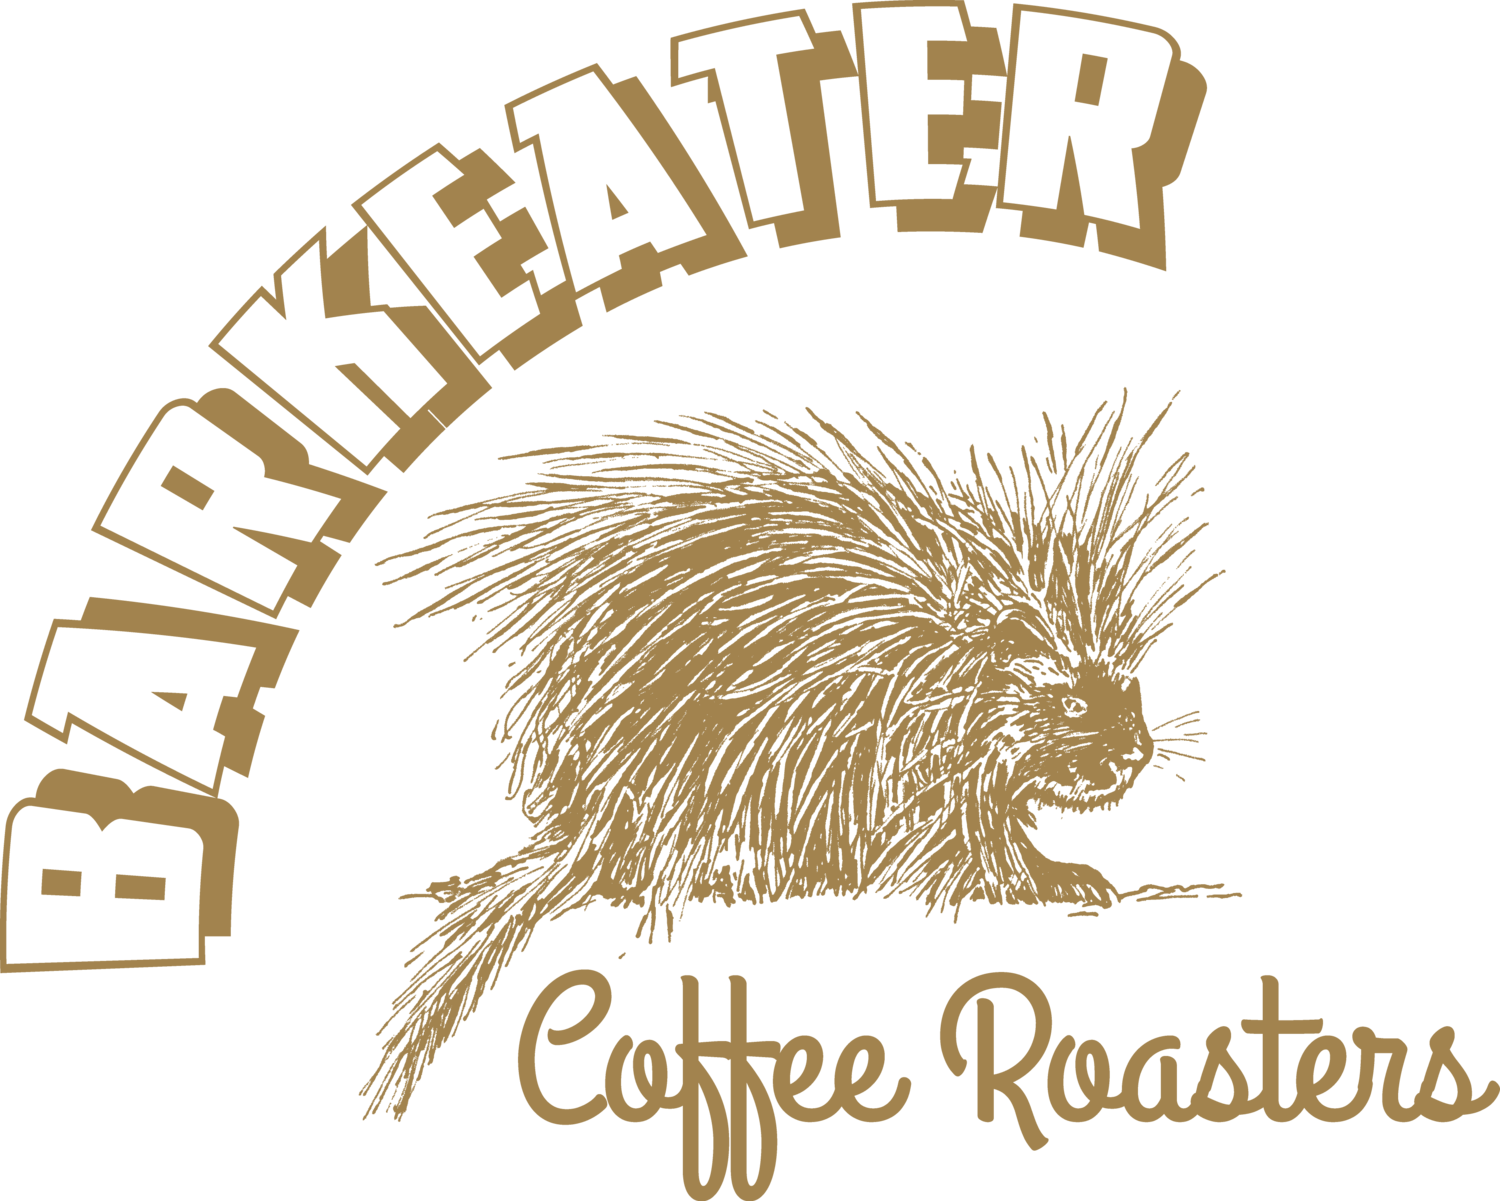 Barkeater Coffee Roasters